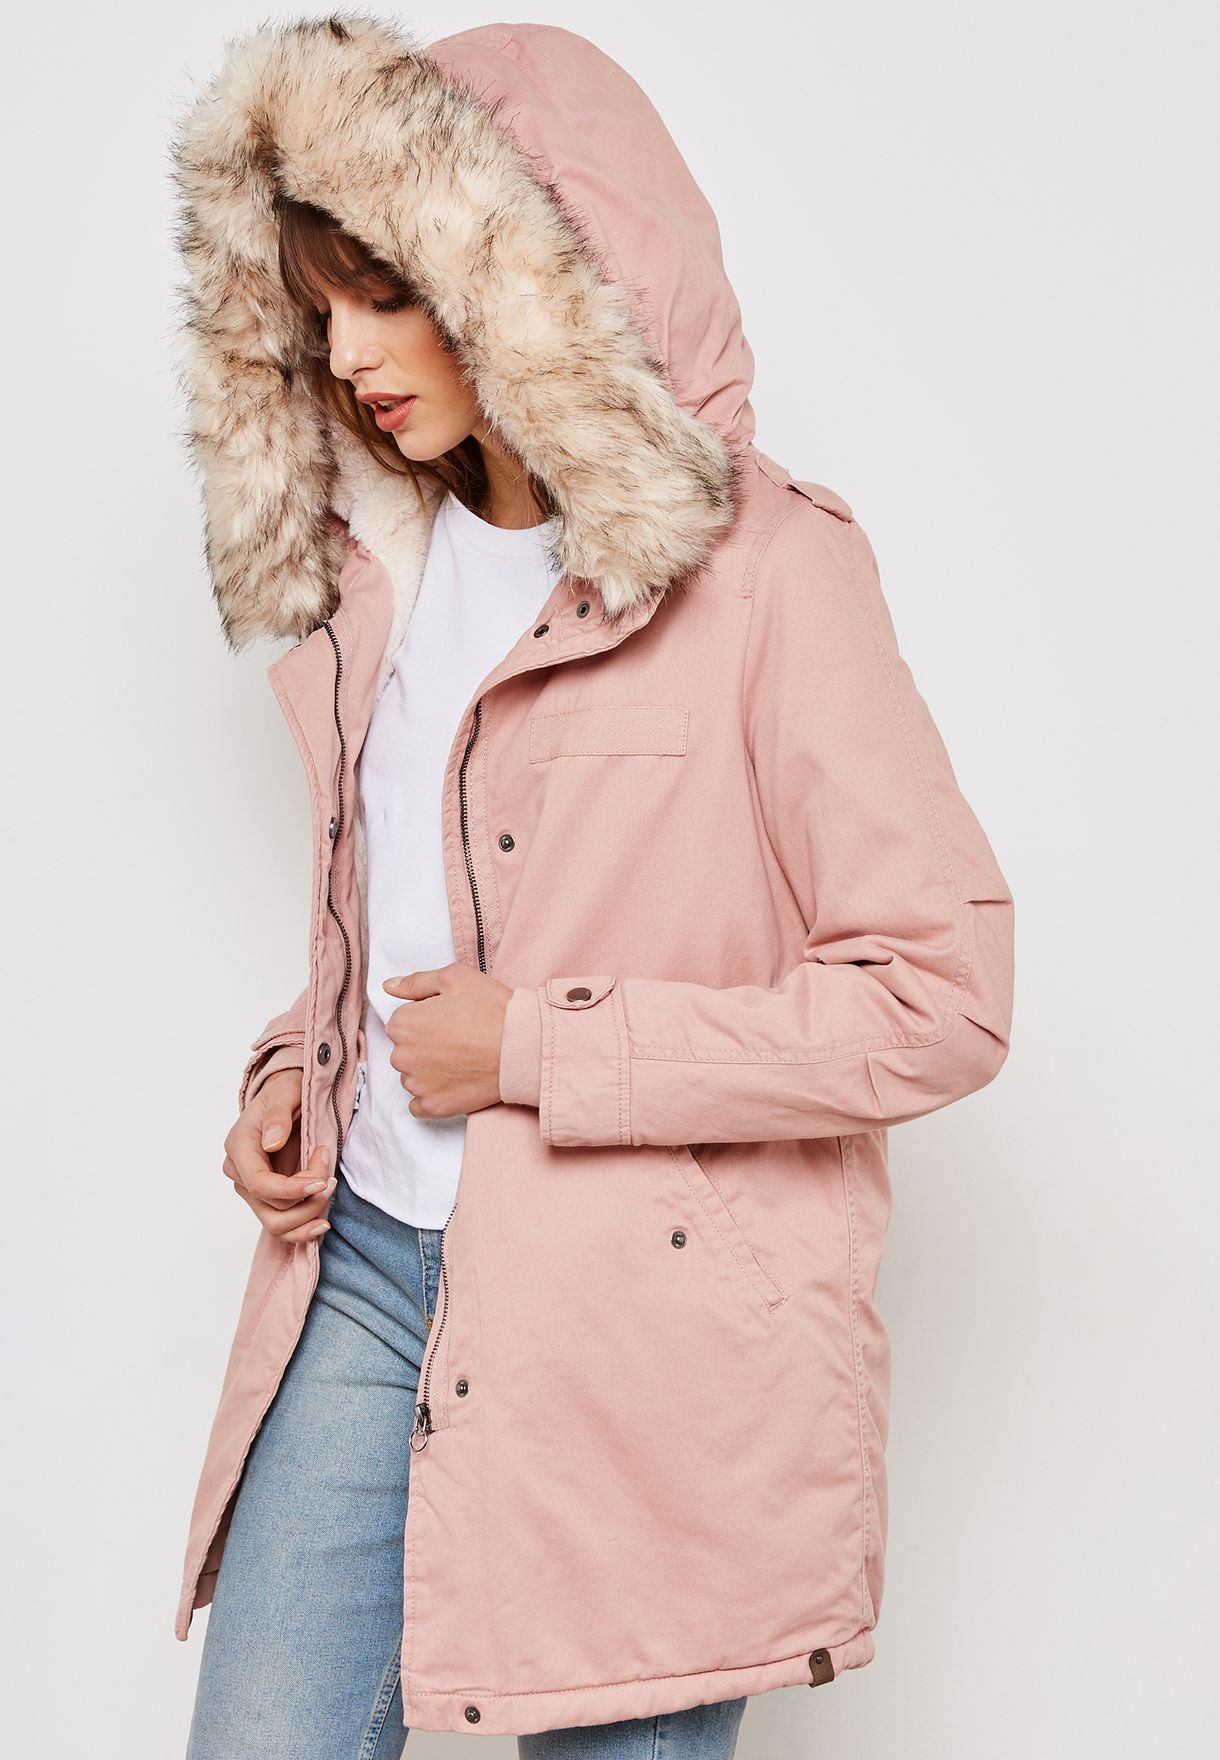 63f23cb9d91 Shop Only pink Faux Fur Collar Jacket 15161133 for Women in UAE ...